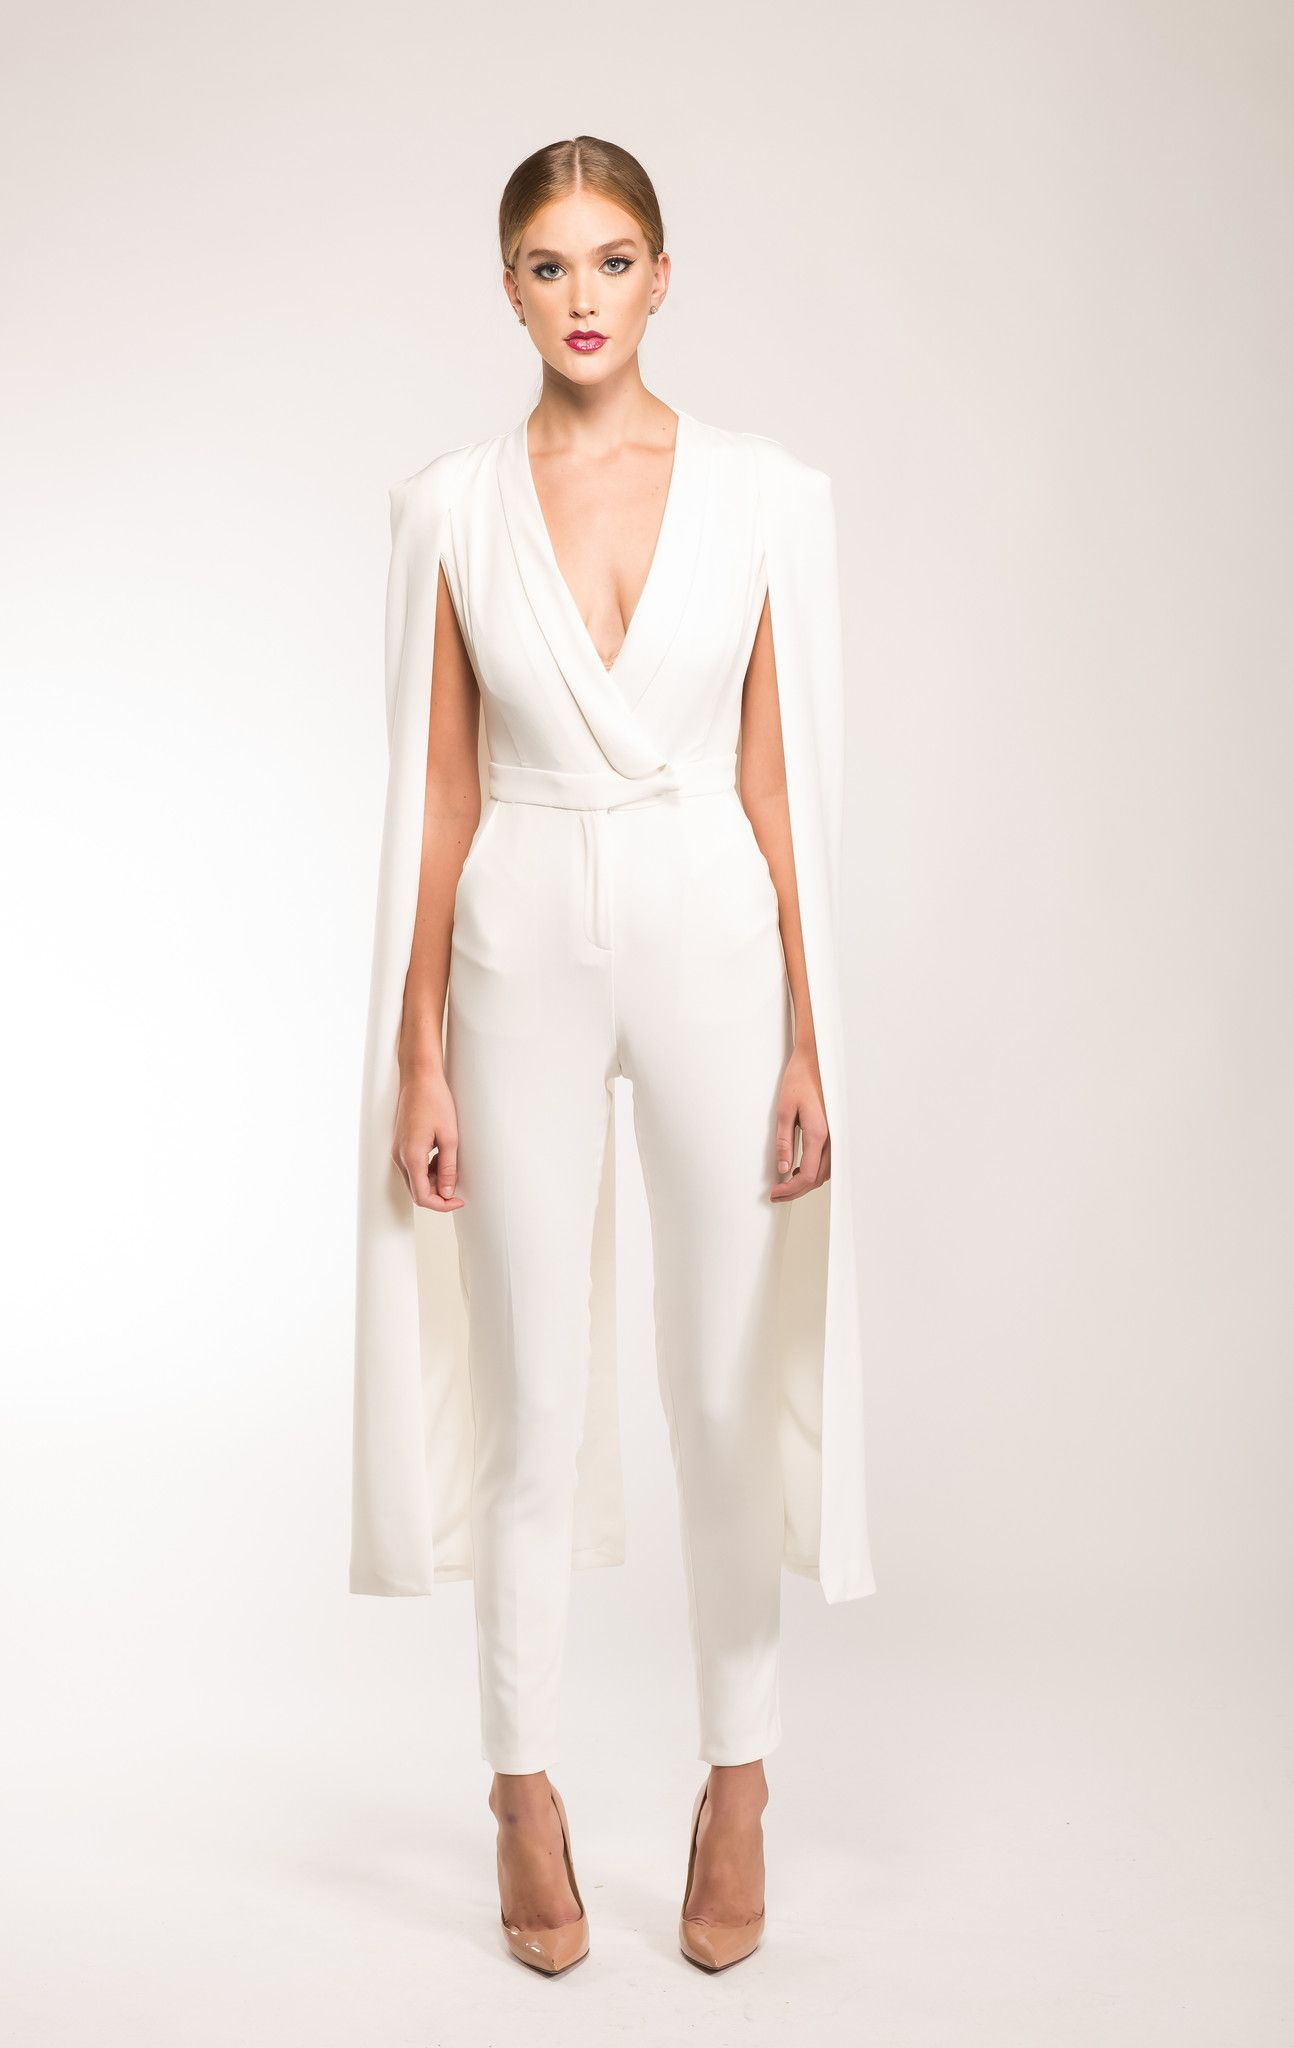 63b778d3d3d Own it in our Luxe Off White Cape Jumpsuit. Tailored to perfection ...